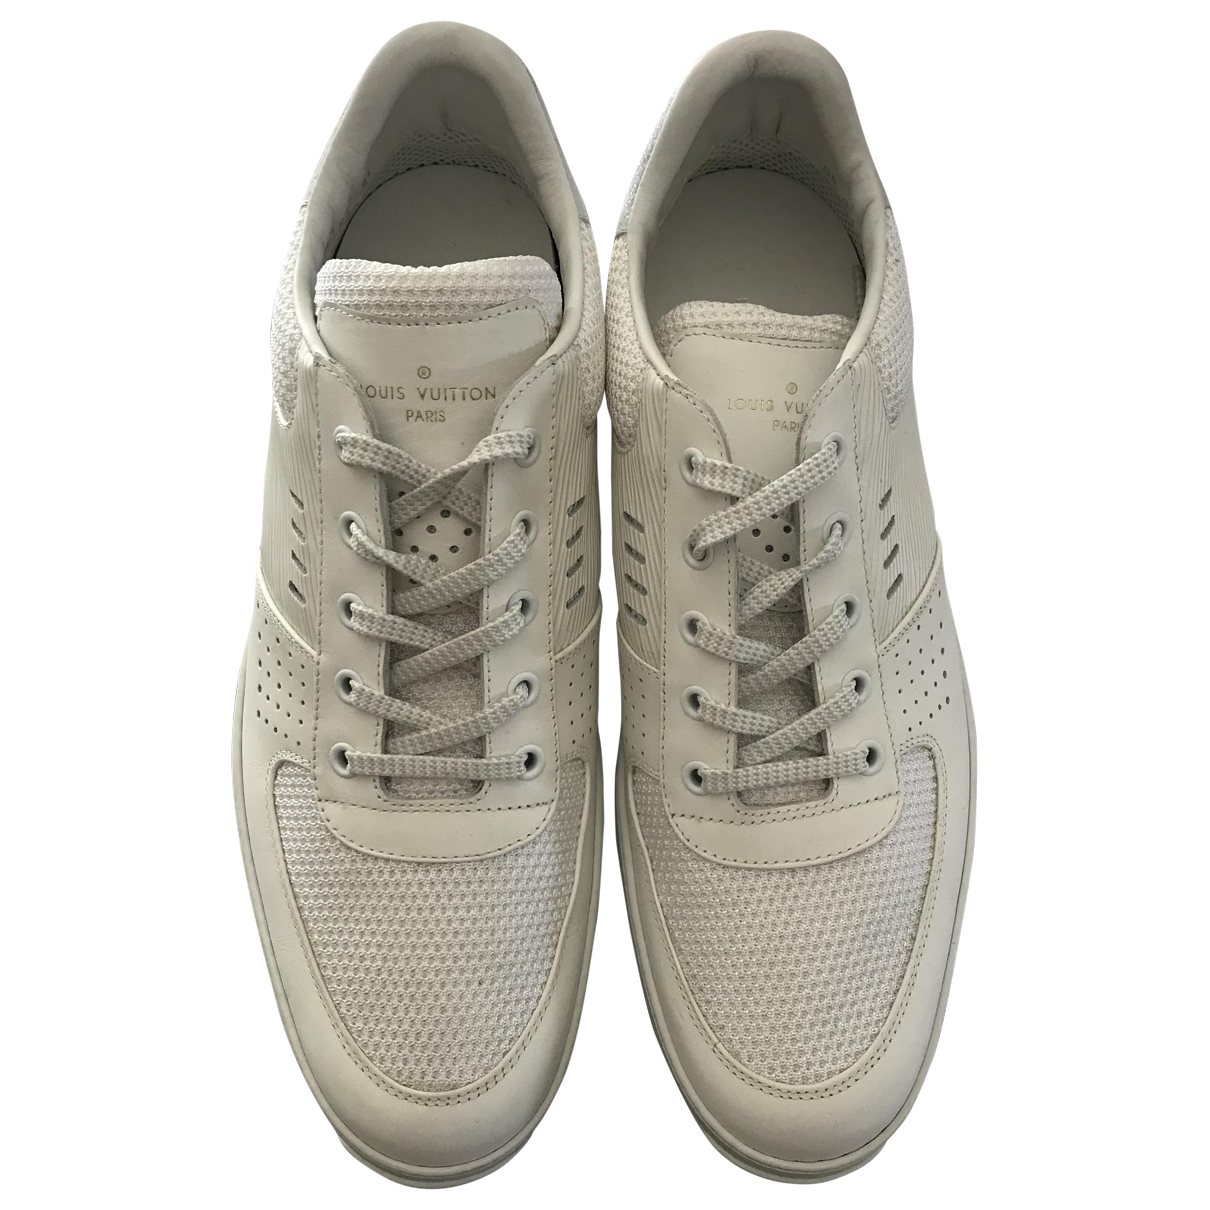 Louis Vuitton Harlem White Leather Trainers for Men 8.5 UK